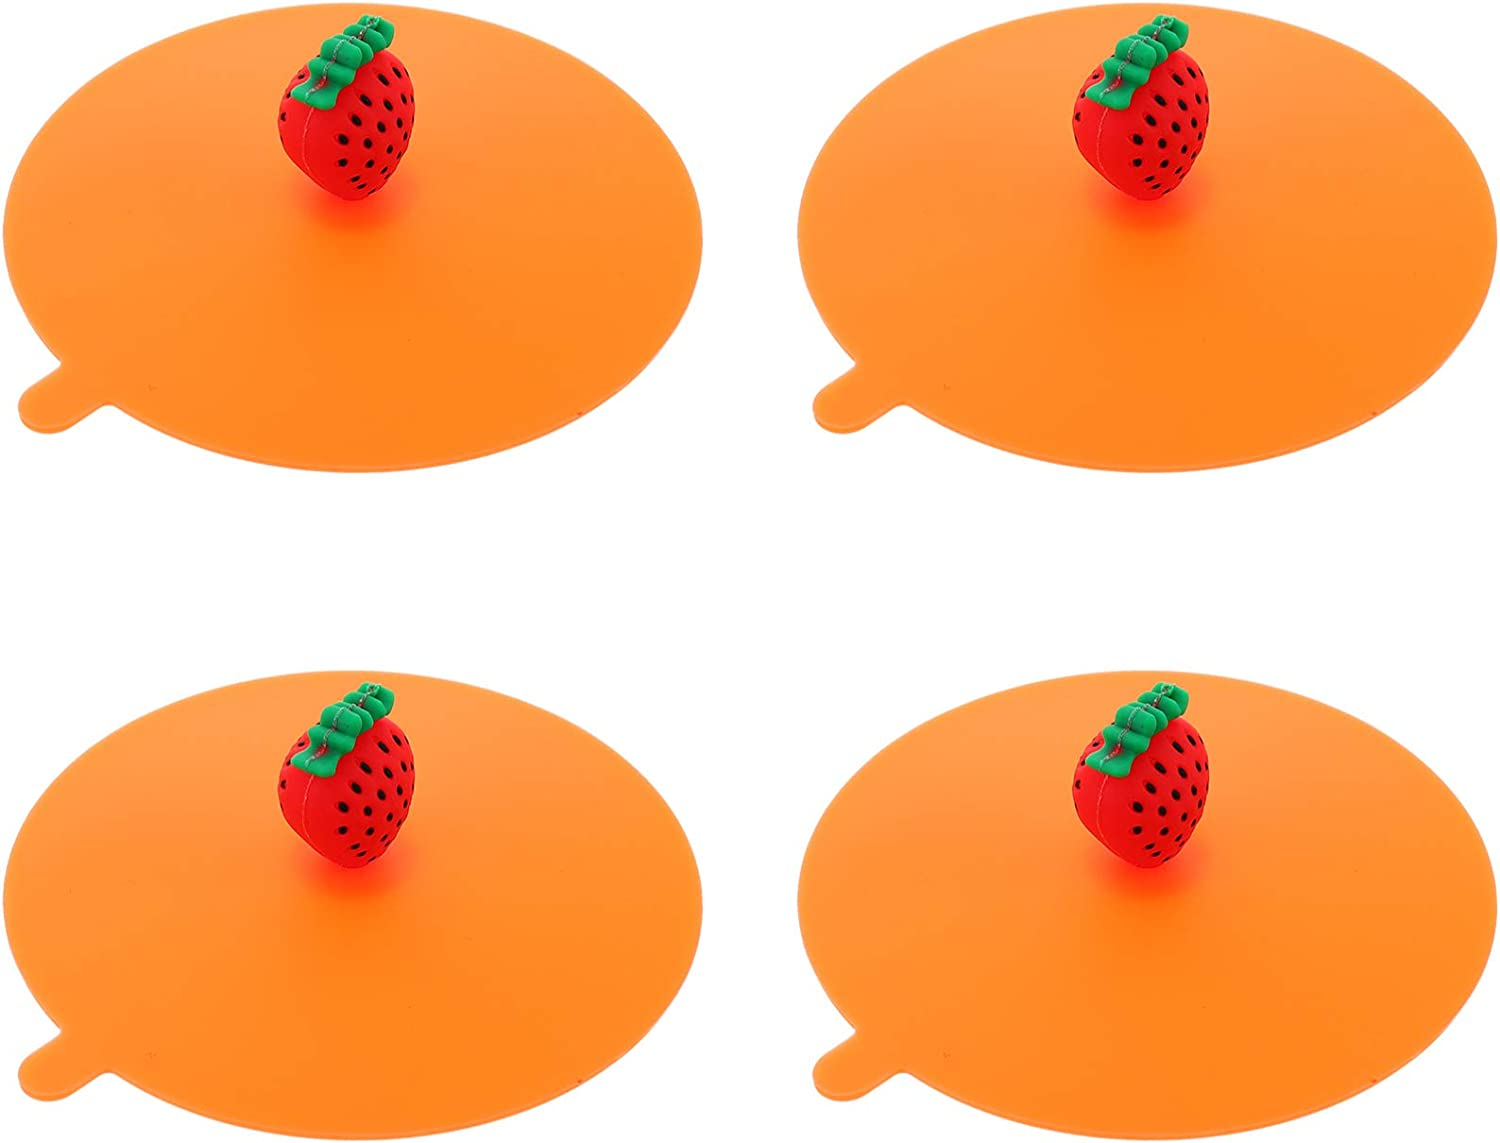 DOITOOL 4pcs Silicone Cup Lids with Strawberry Handle Cute Fruit Anti- Dust Airtight Mug Covers Drink Cup Cover for Hot and Cold Drink 11cm